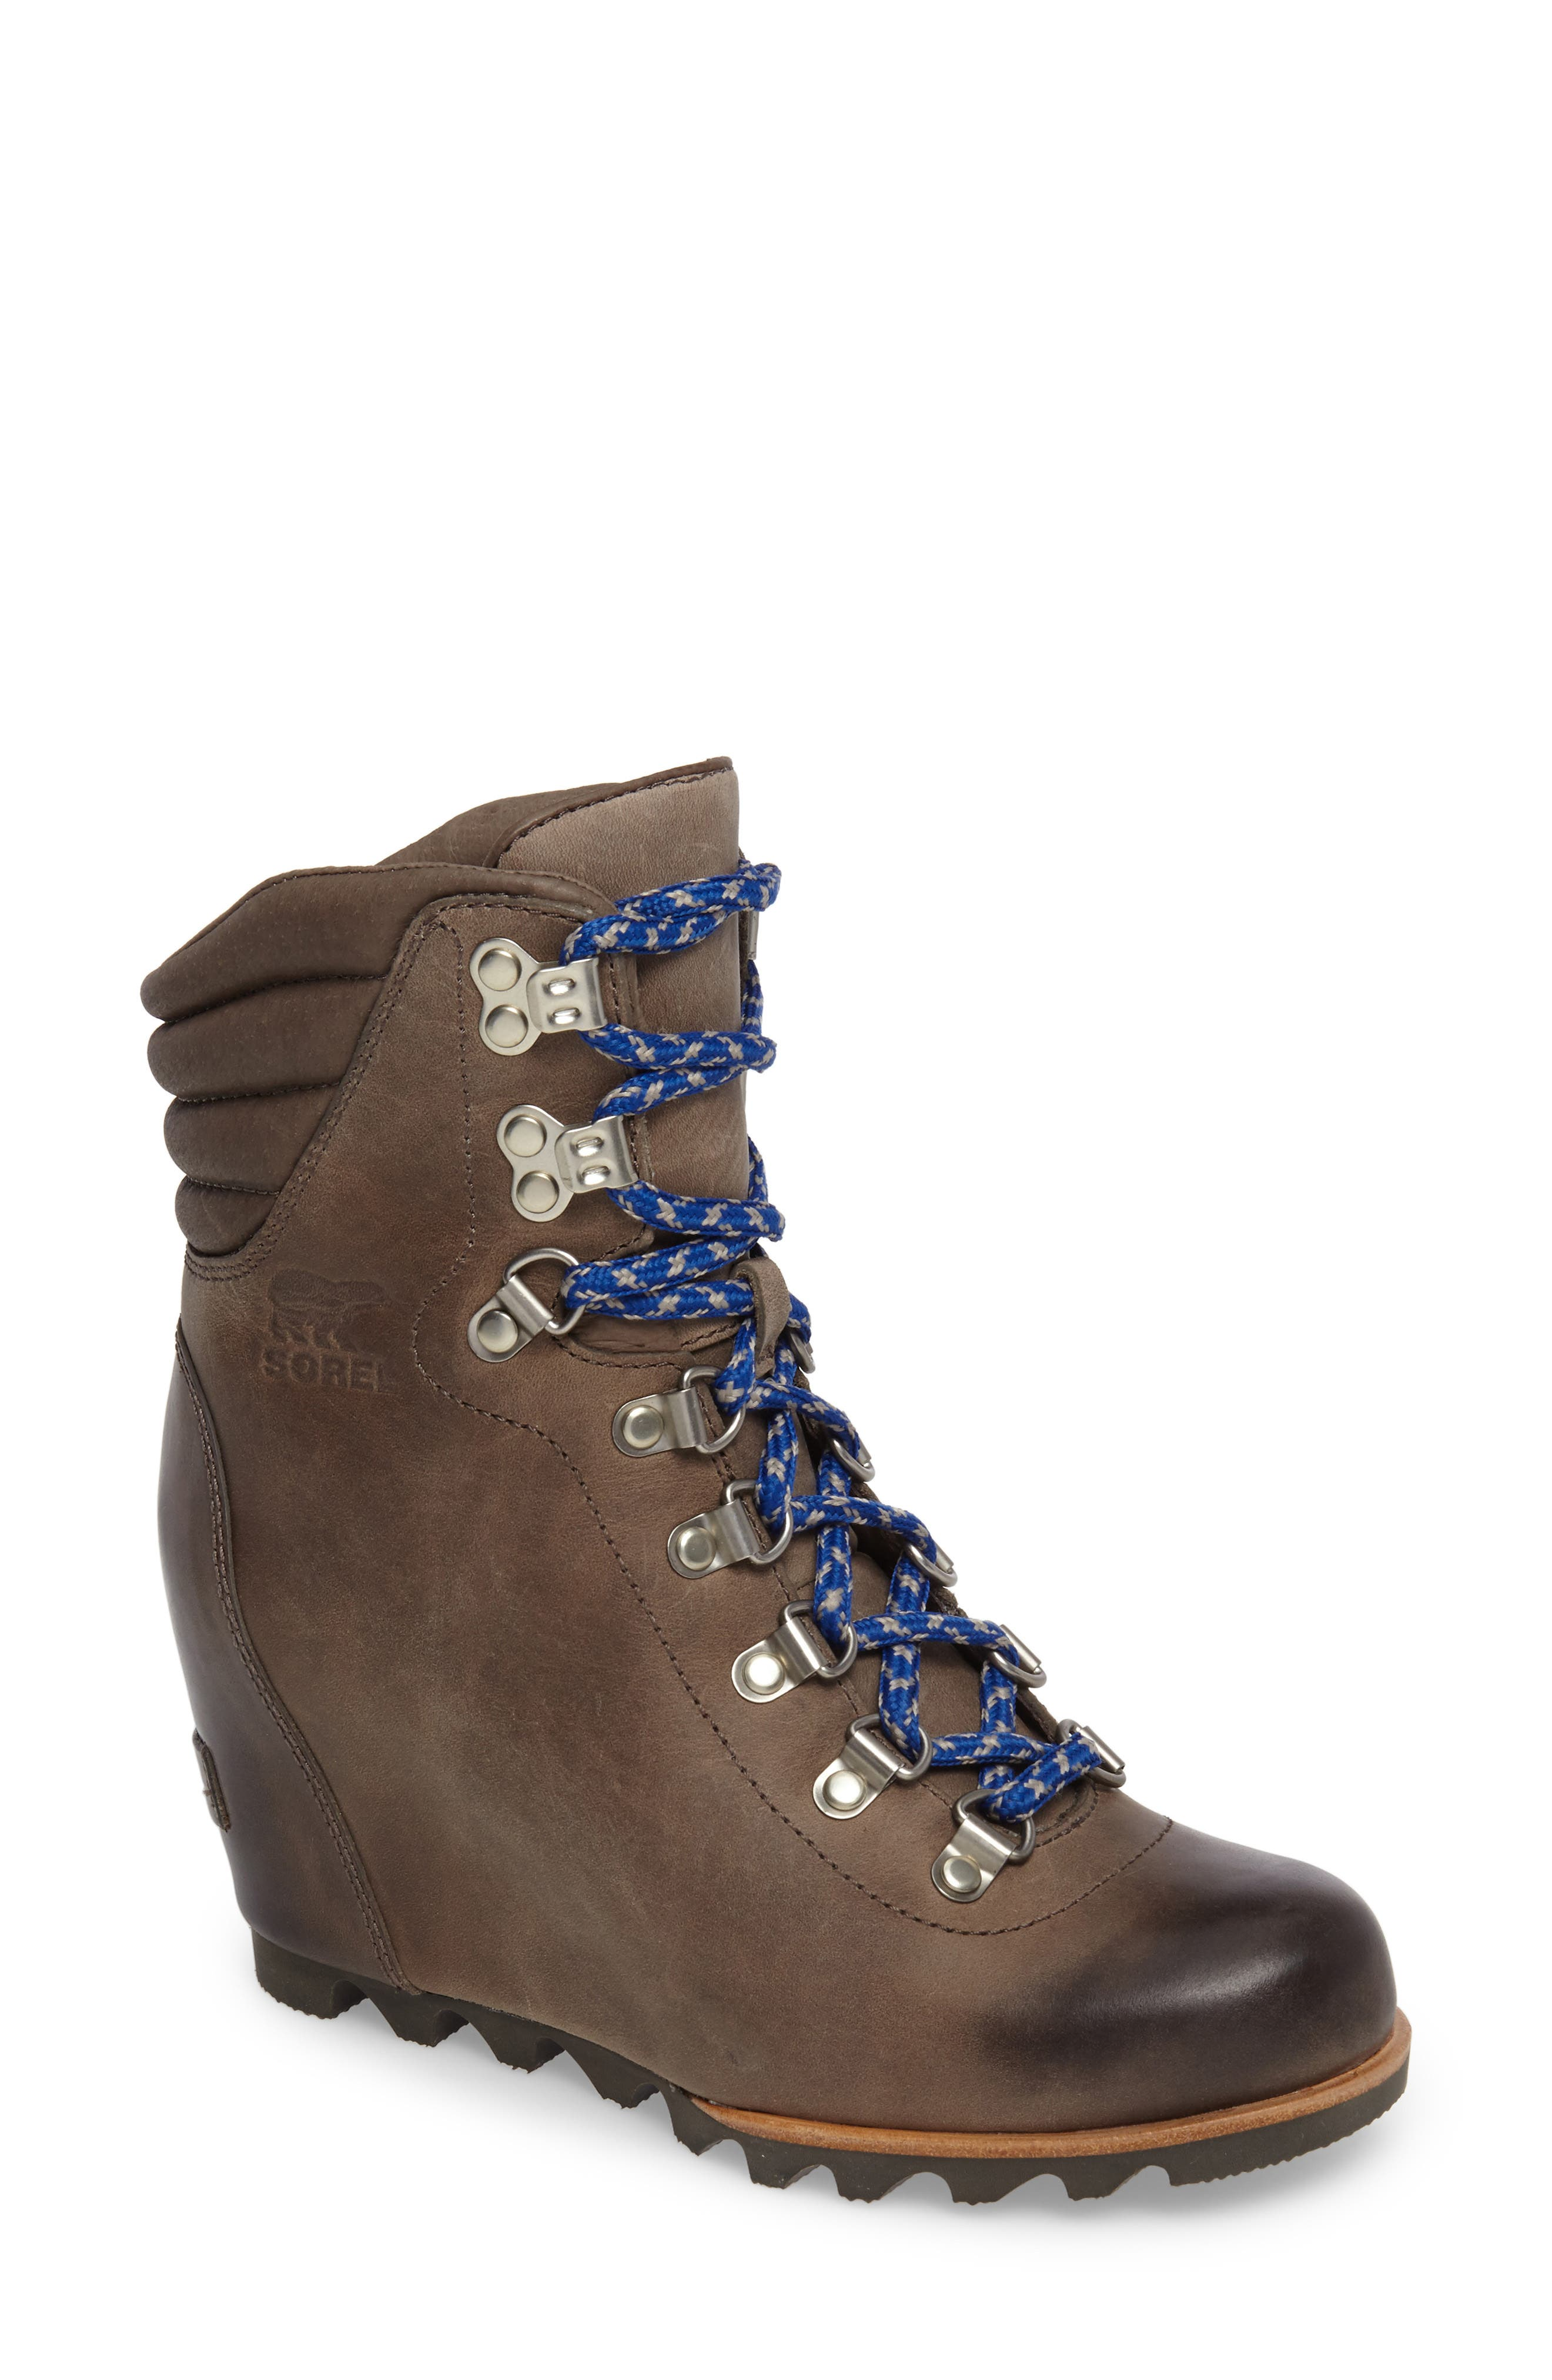 'Conquest' Waterproof Wedge Boot,                             Main thumbnail 2, color,